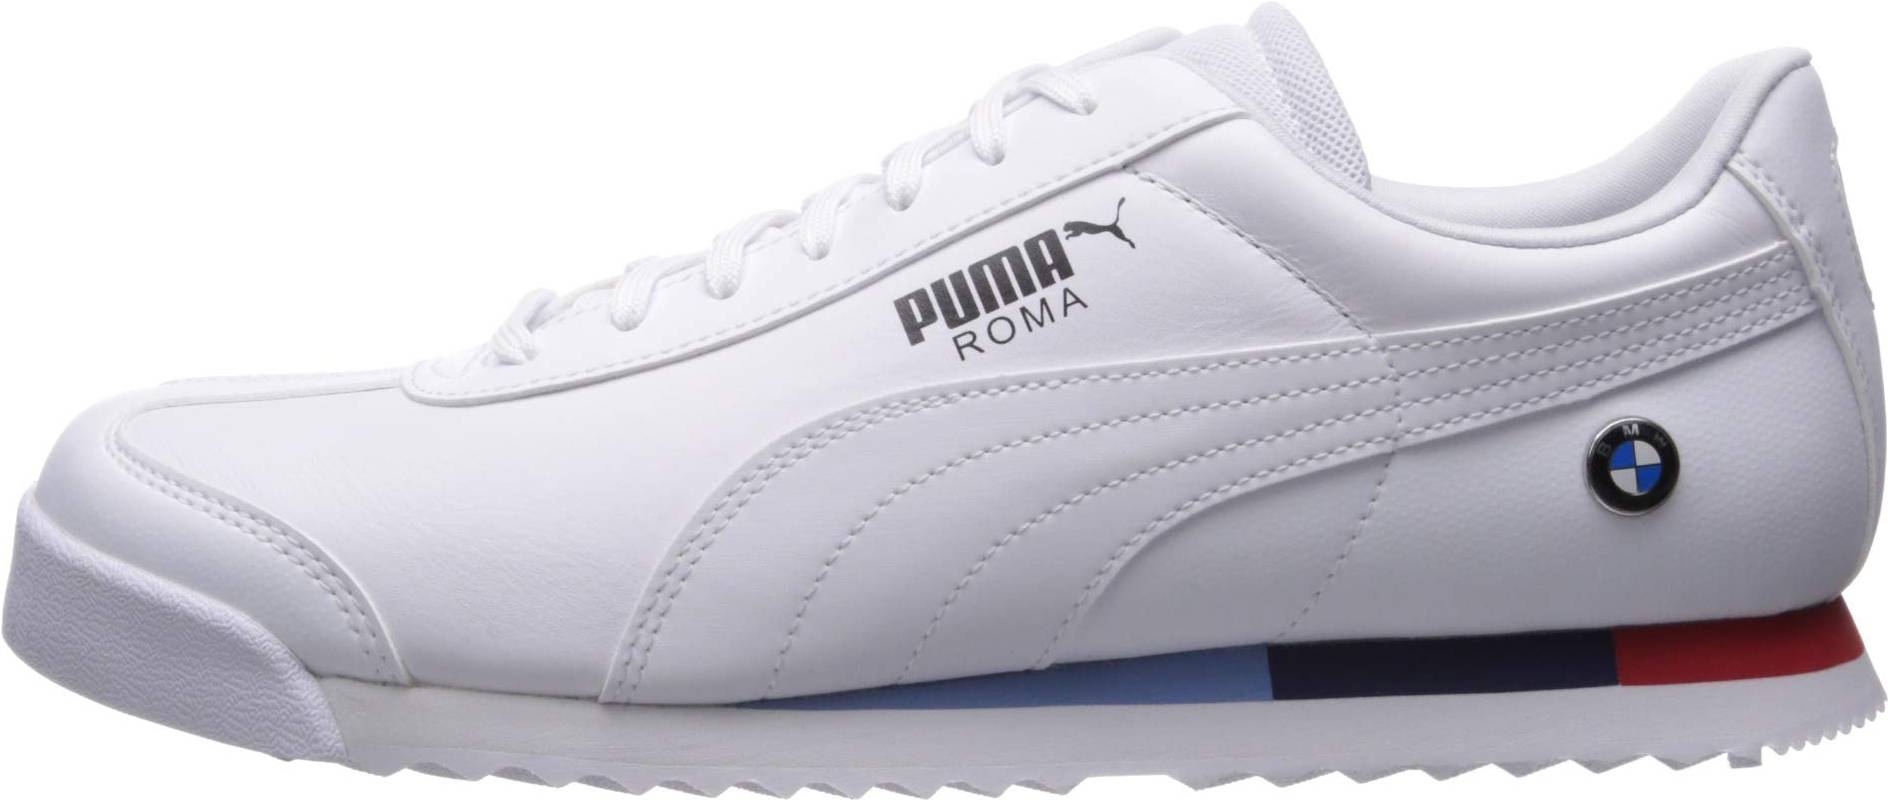 Save 46% on White Puma Sneakers (60